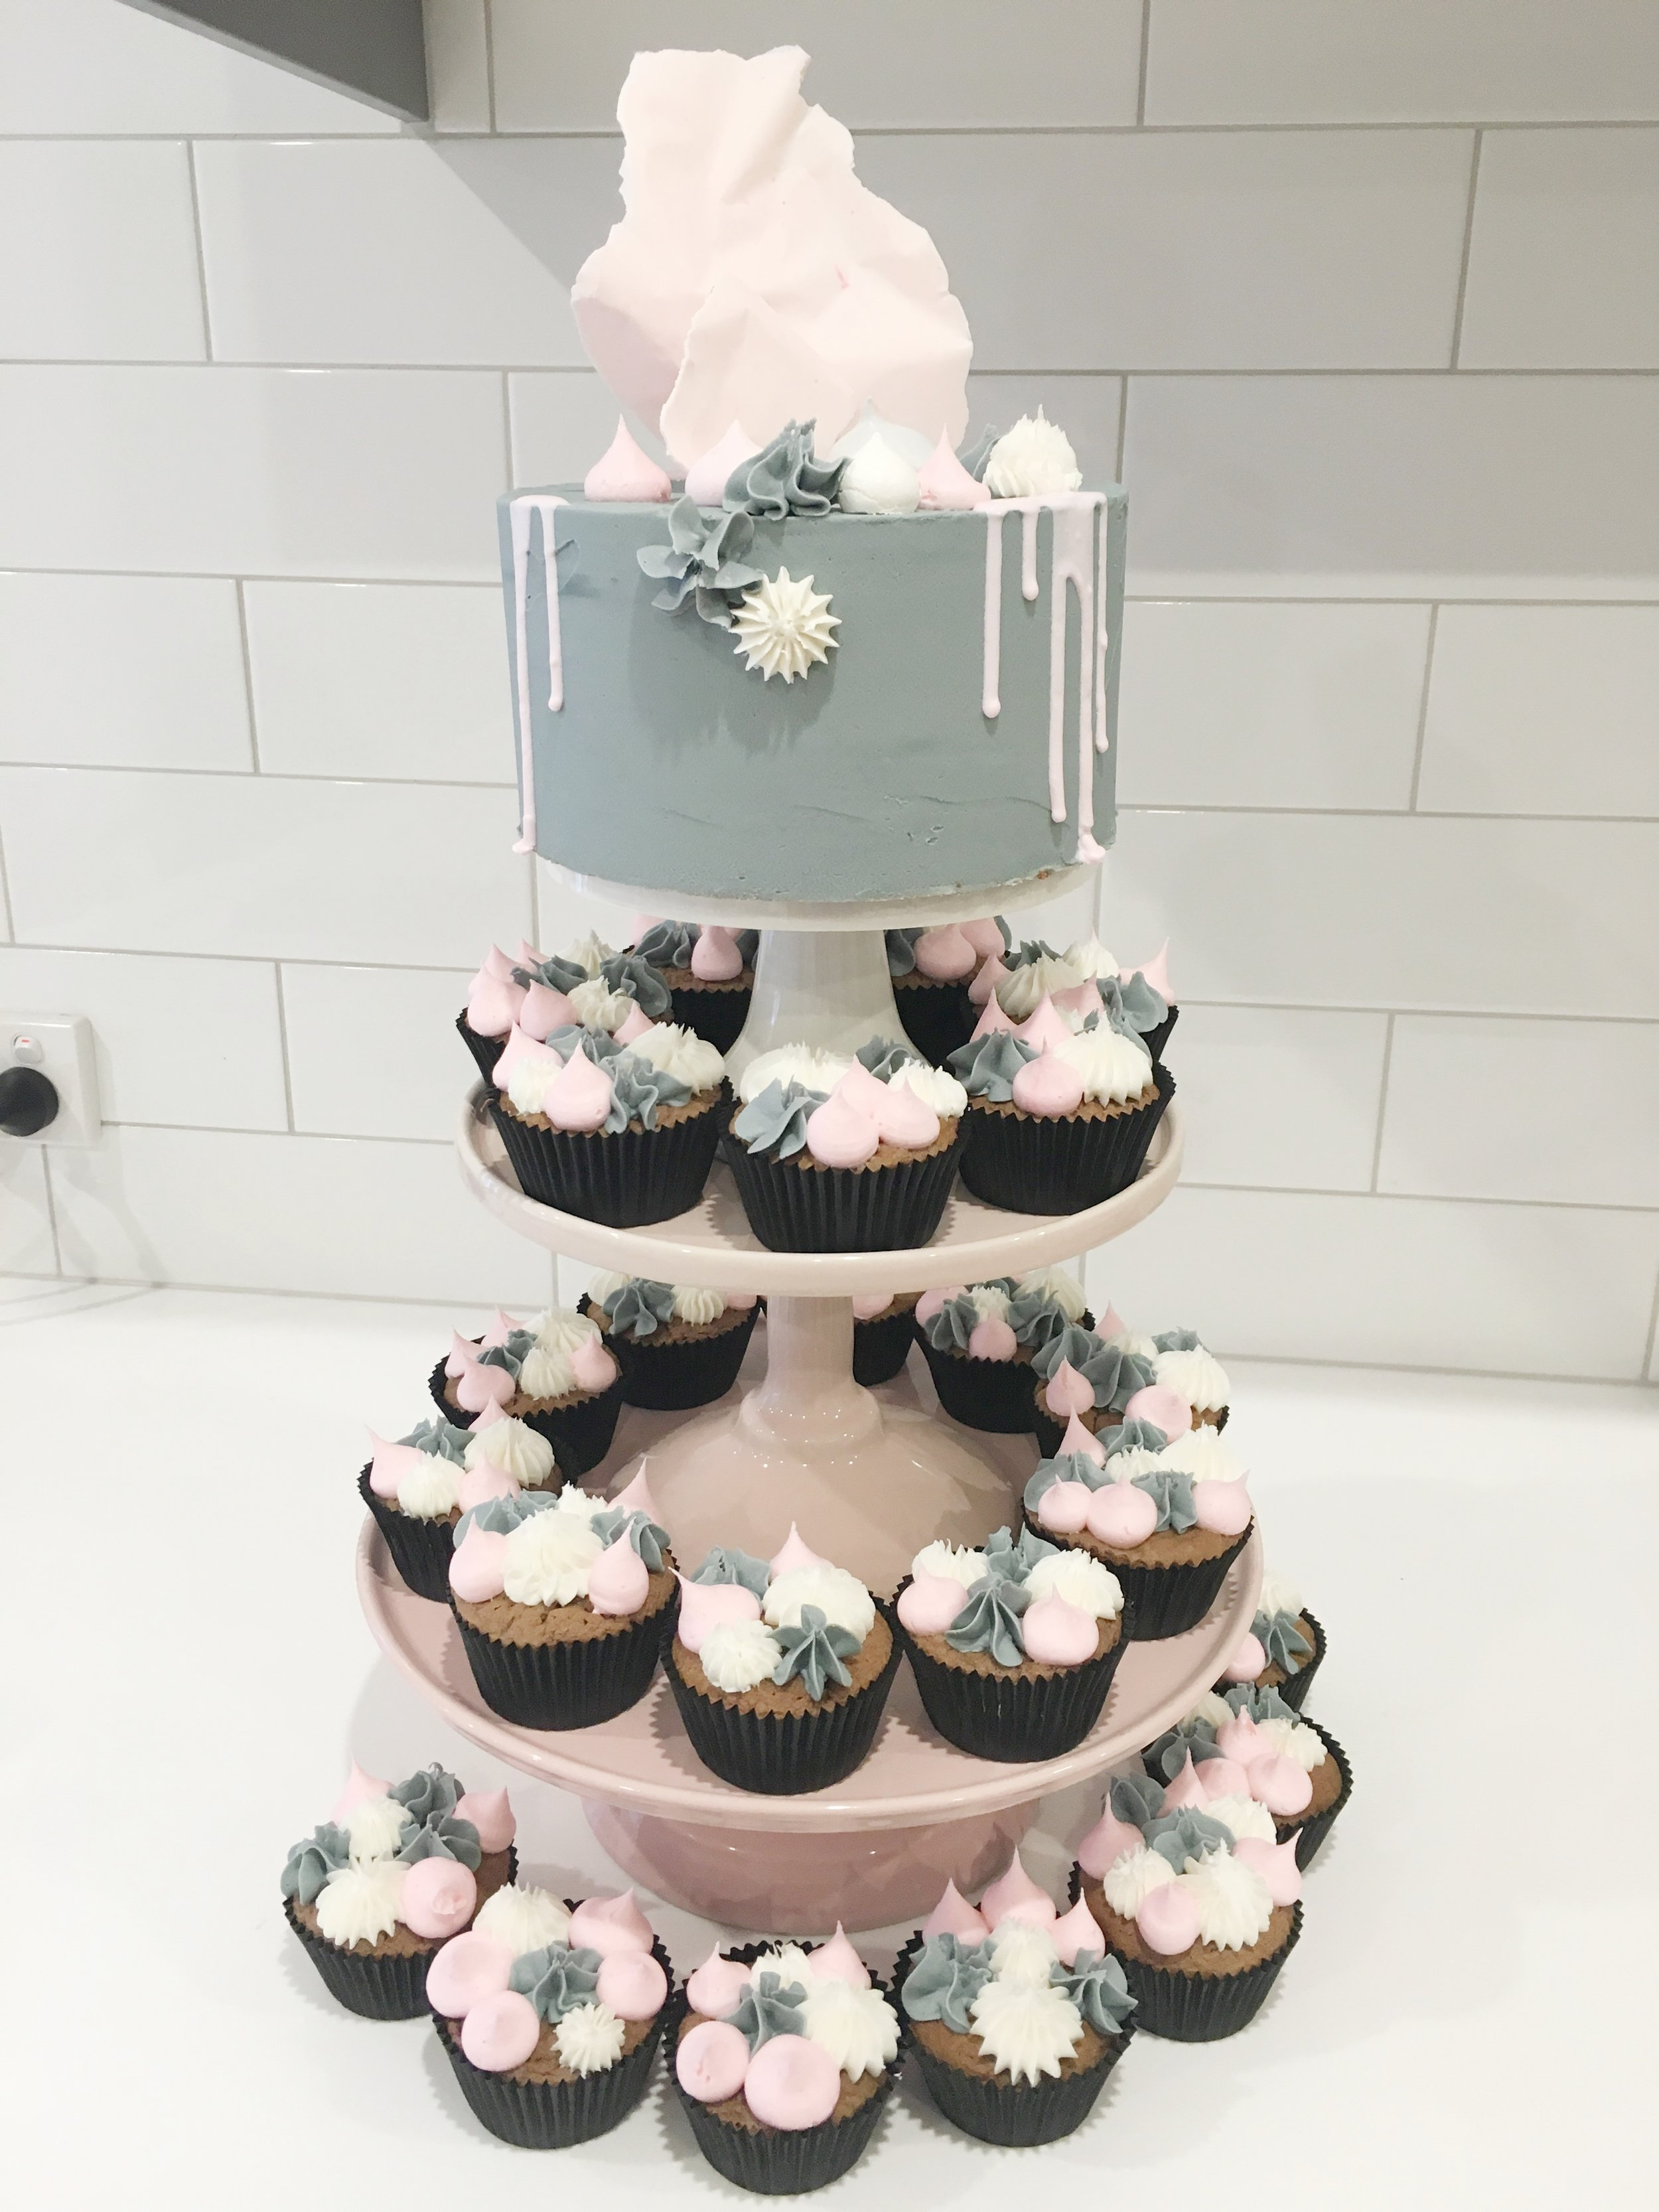 Concrete Cake with Matching Cupcakes